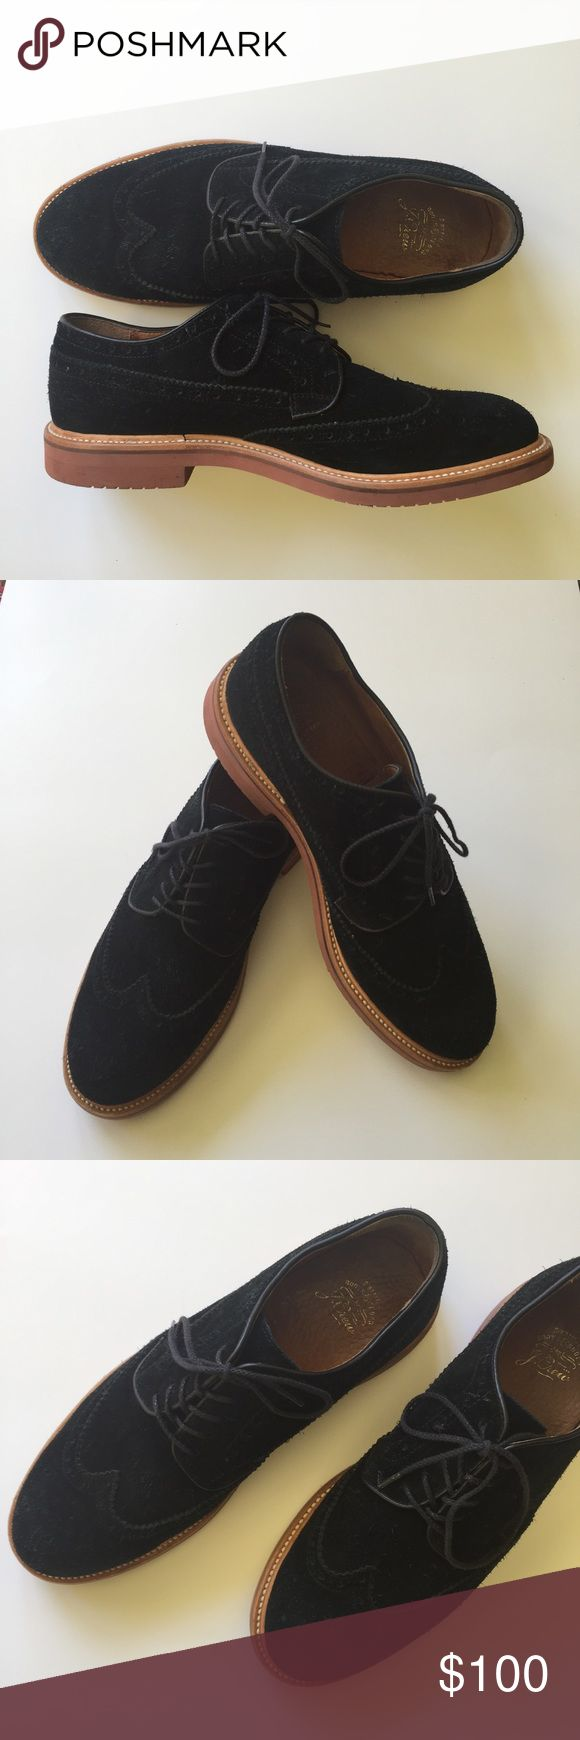 J. Crew Kenton Suede Wingtips Amazing pair of J.Crew Kenton Suede Wingtips. Such a classic shoe. J. Crew's designers took a cue from the iconic wing-tip details and added a genuine Goodyear-welt construction. That means the sole is sewn on rather than cemented for more durable and breathable wear. It also means that you can replace the sole over and over again. In excellent pre-owned condition. Suede upper. Size 10.5. Black. No trades! J. Crew Shoes Oxfords & Derbys